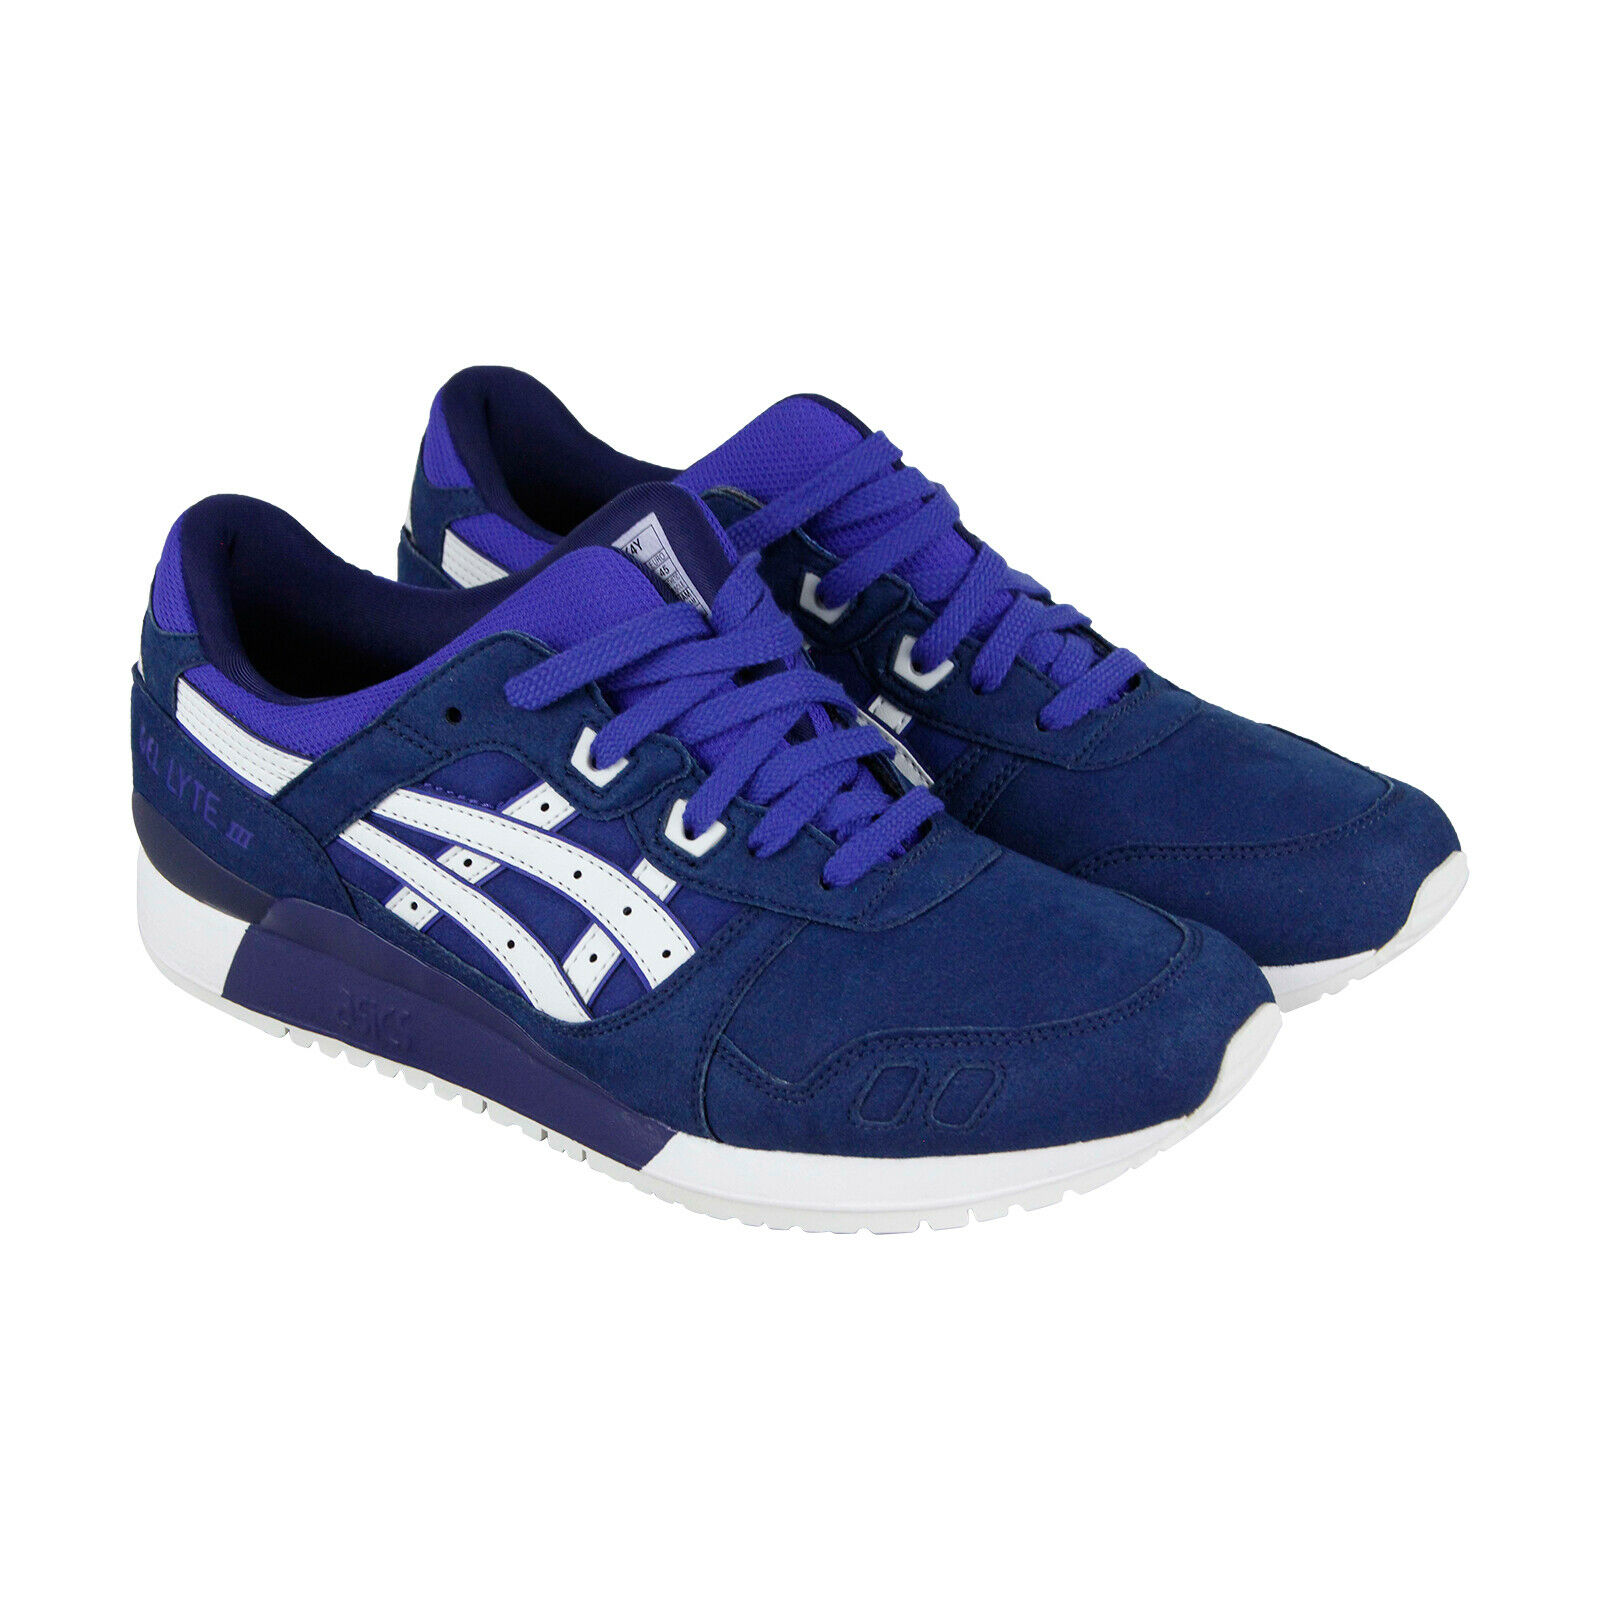 Asics Gel Lyte III Mens bluee Suede Athletic Lace Up Running shoes